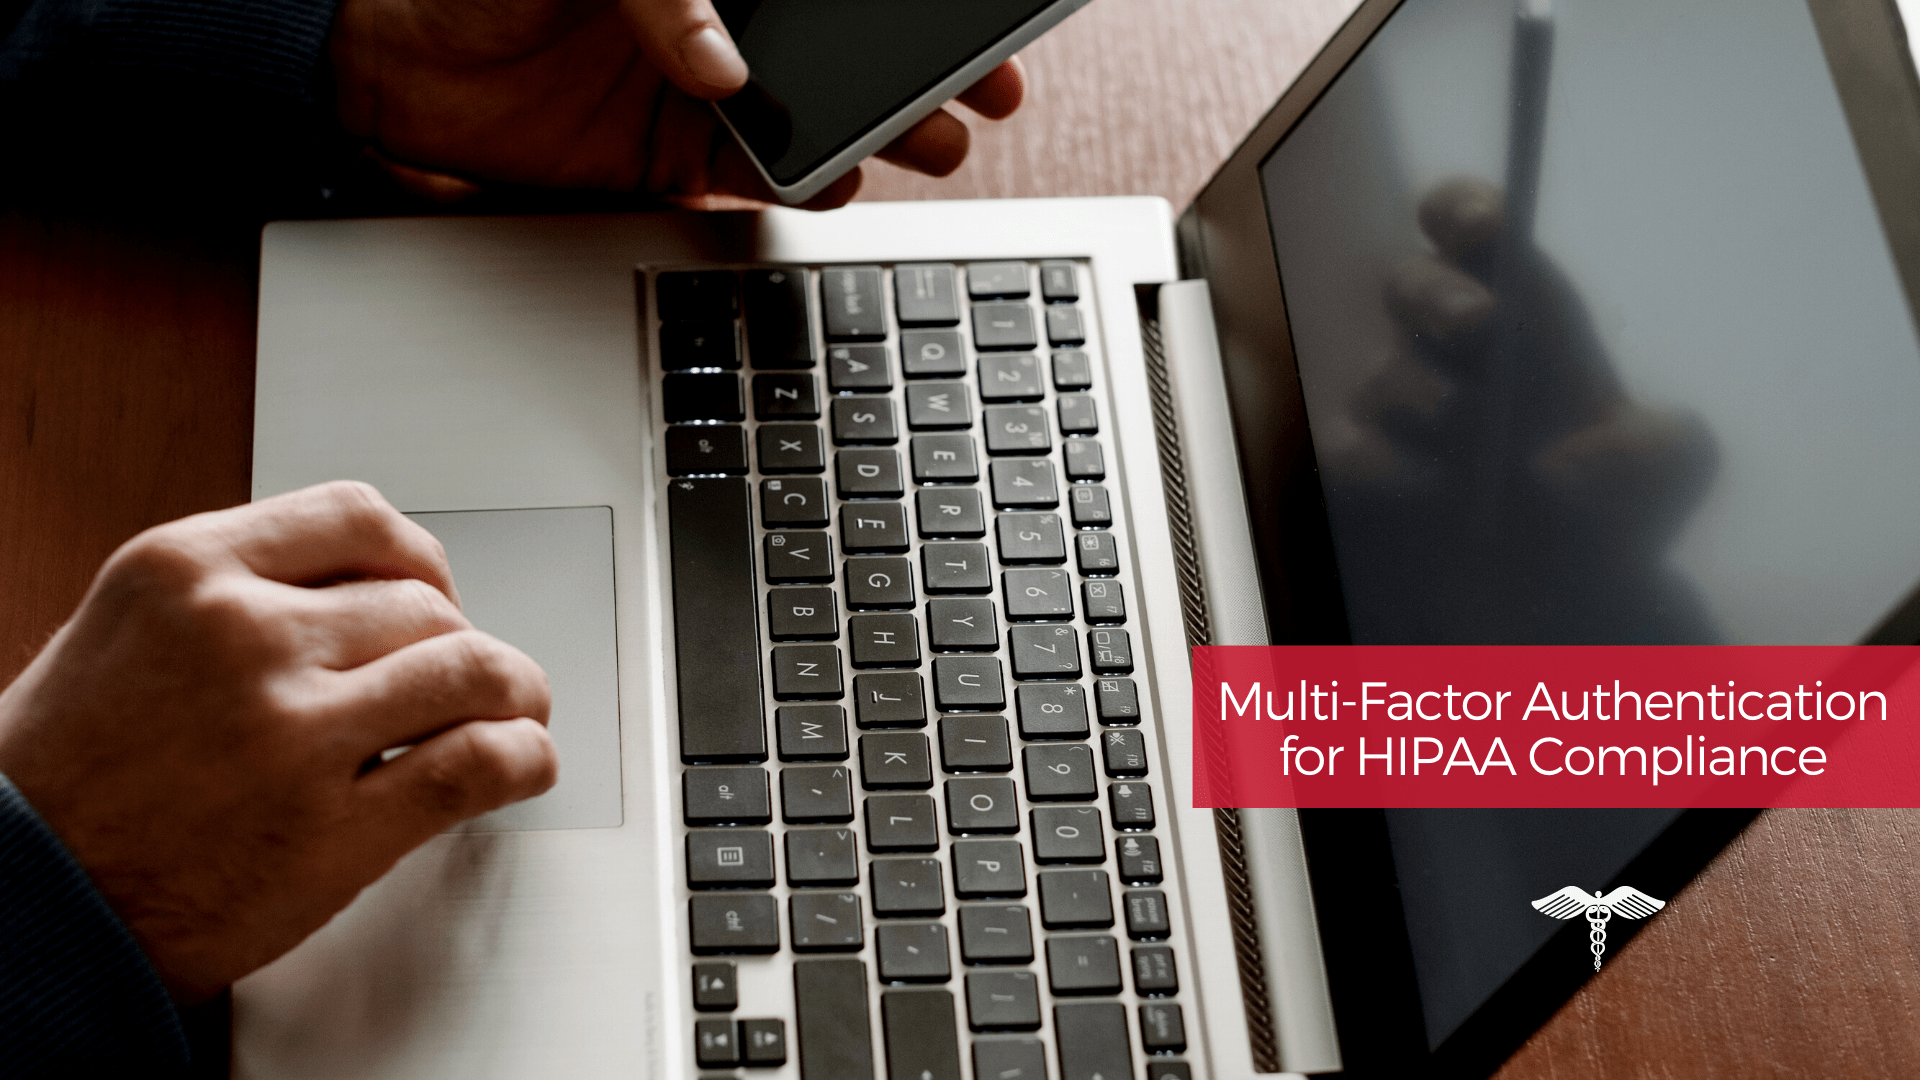 Multi-Factor Authentication for HIPAA Compliance